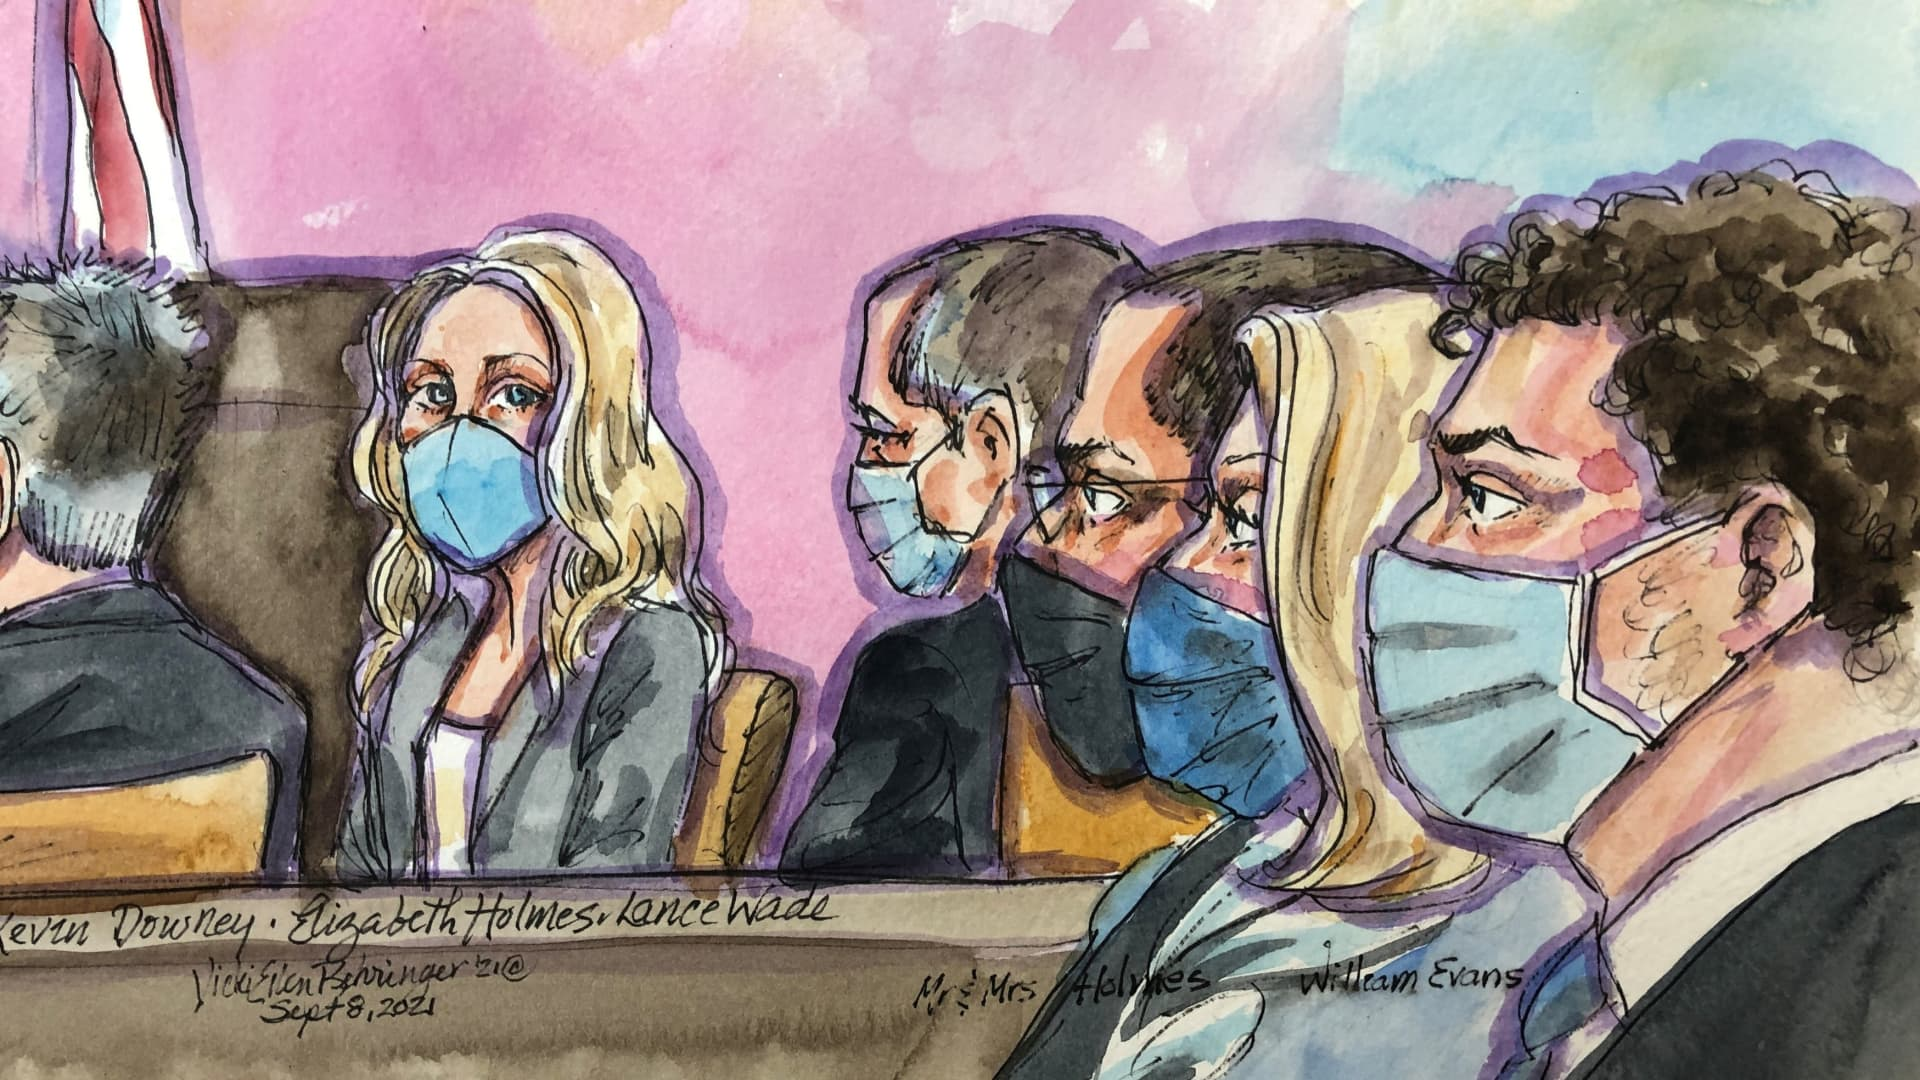 Theranos founder Elizabeth Holmes appears at Robert F. Peckham U.S. Courthouse for opening arguments in her trial, in San Jose, California, U.S., September 8, 2021 in this courtroom sketch.